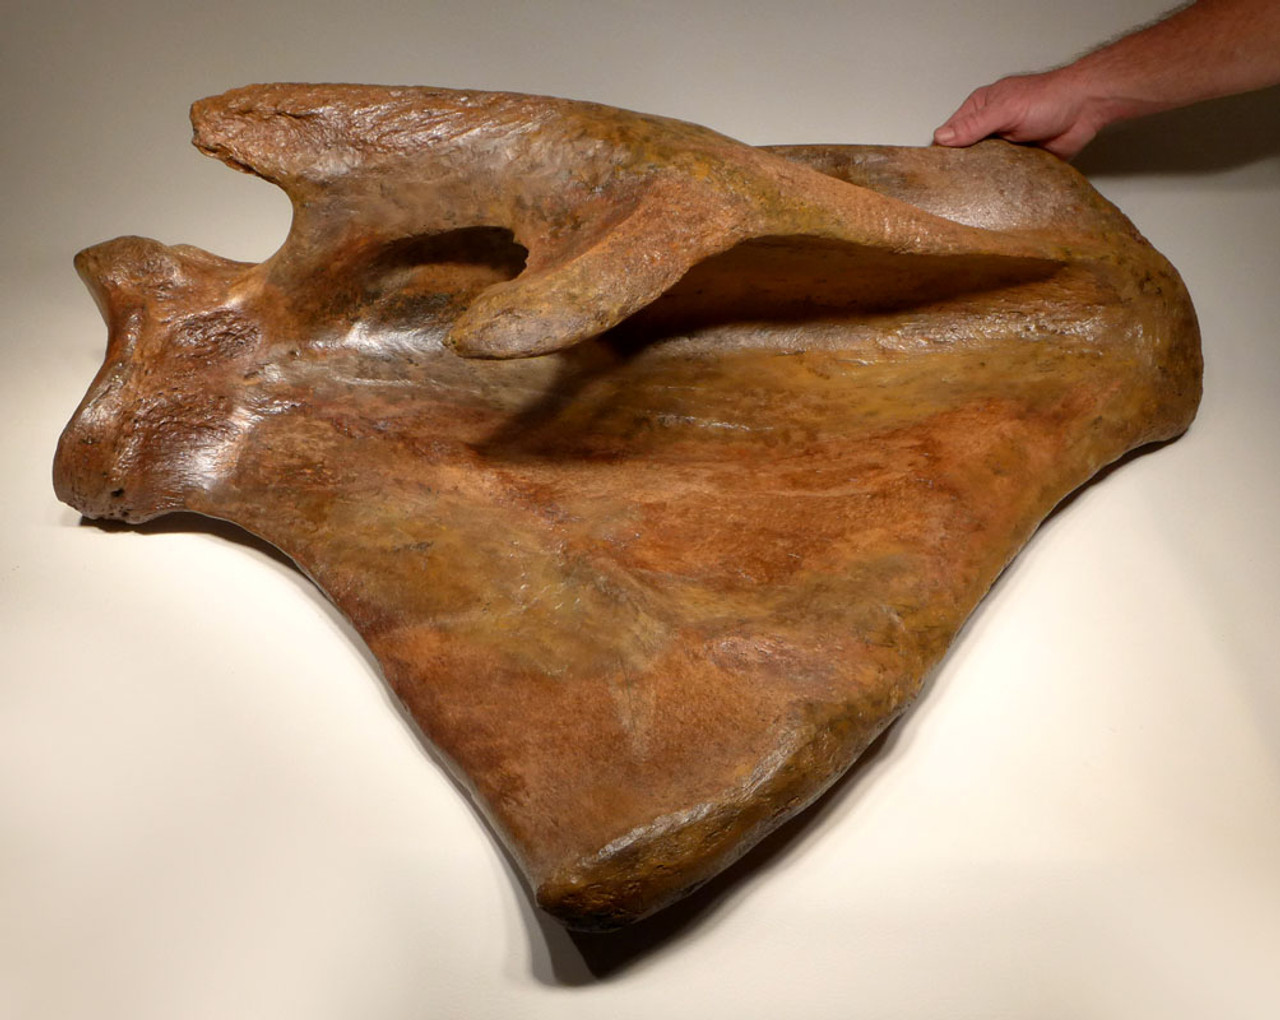 LMX158 - LARGE FOSSIL WOOLLY MAMMOTH SCAPULA SHOULDER BLADE BONE